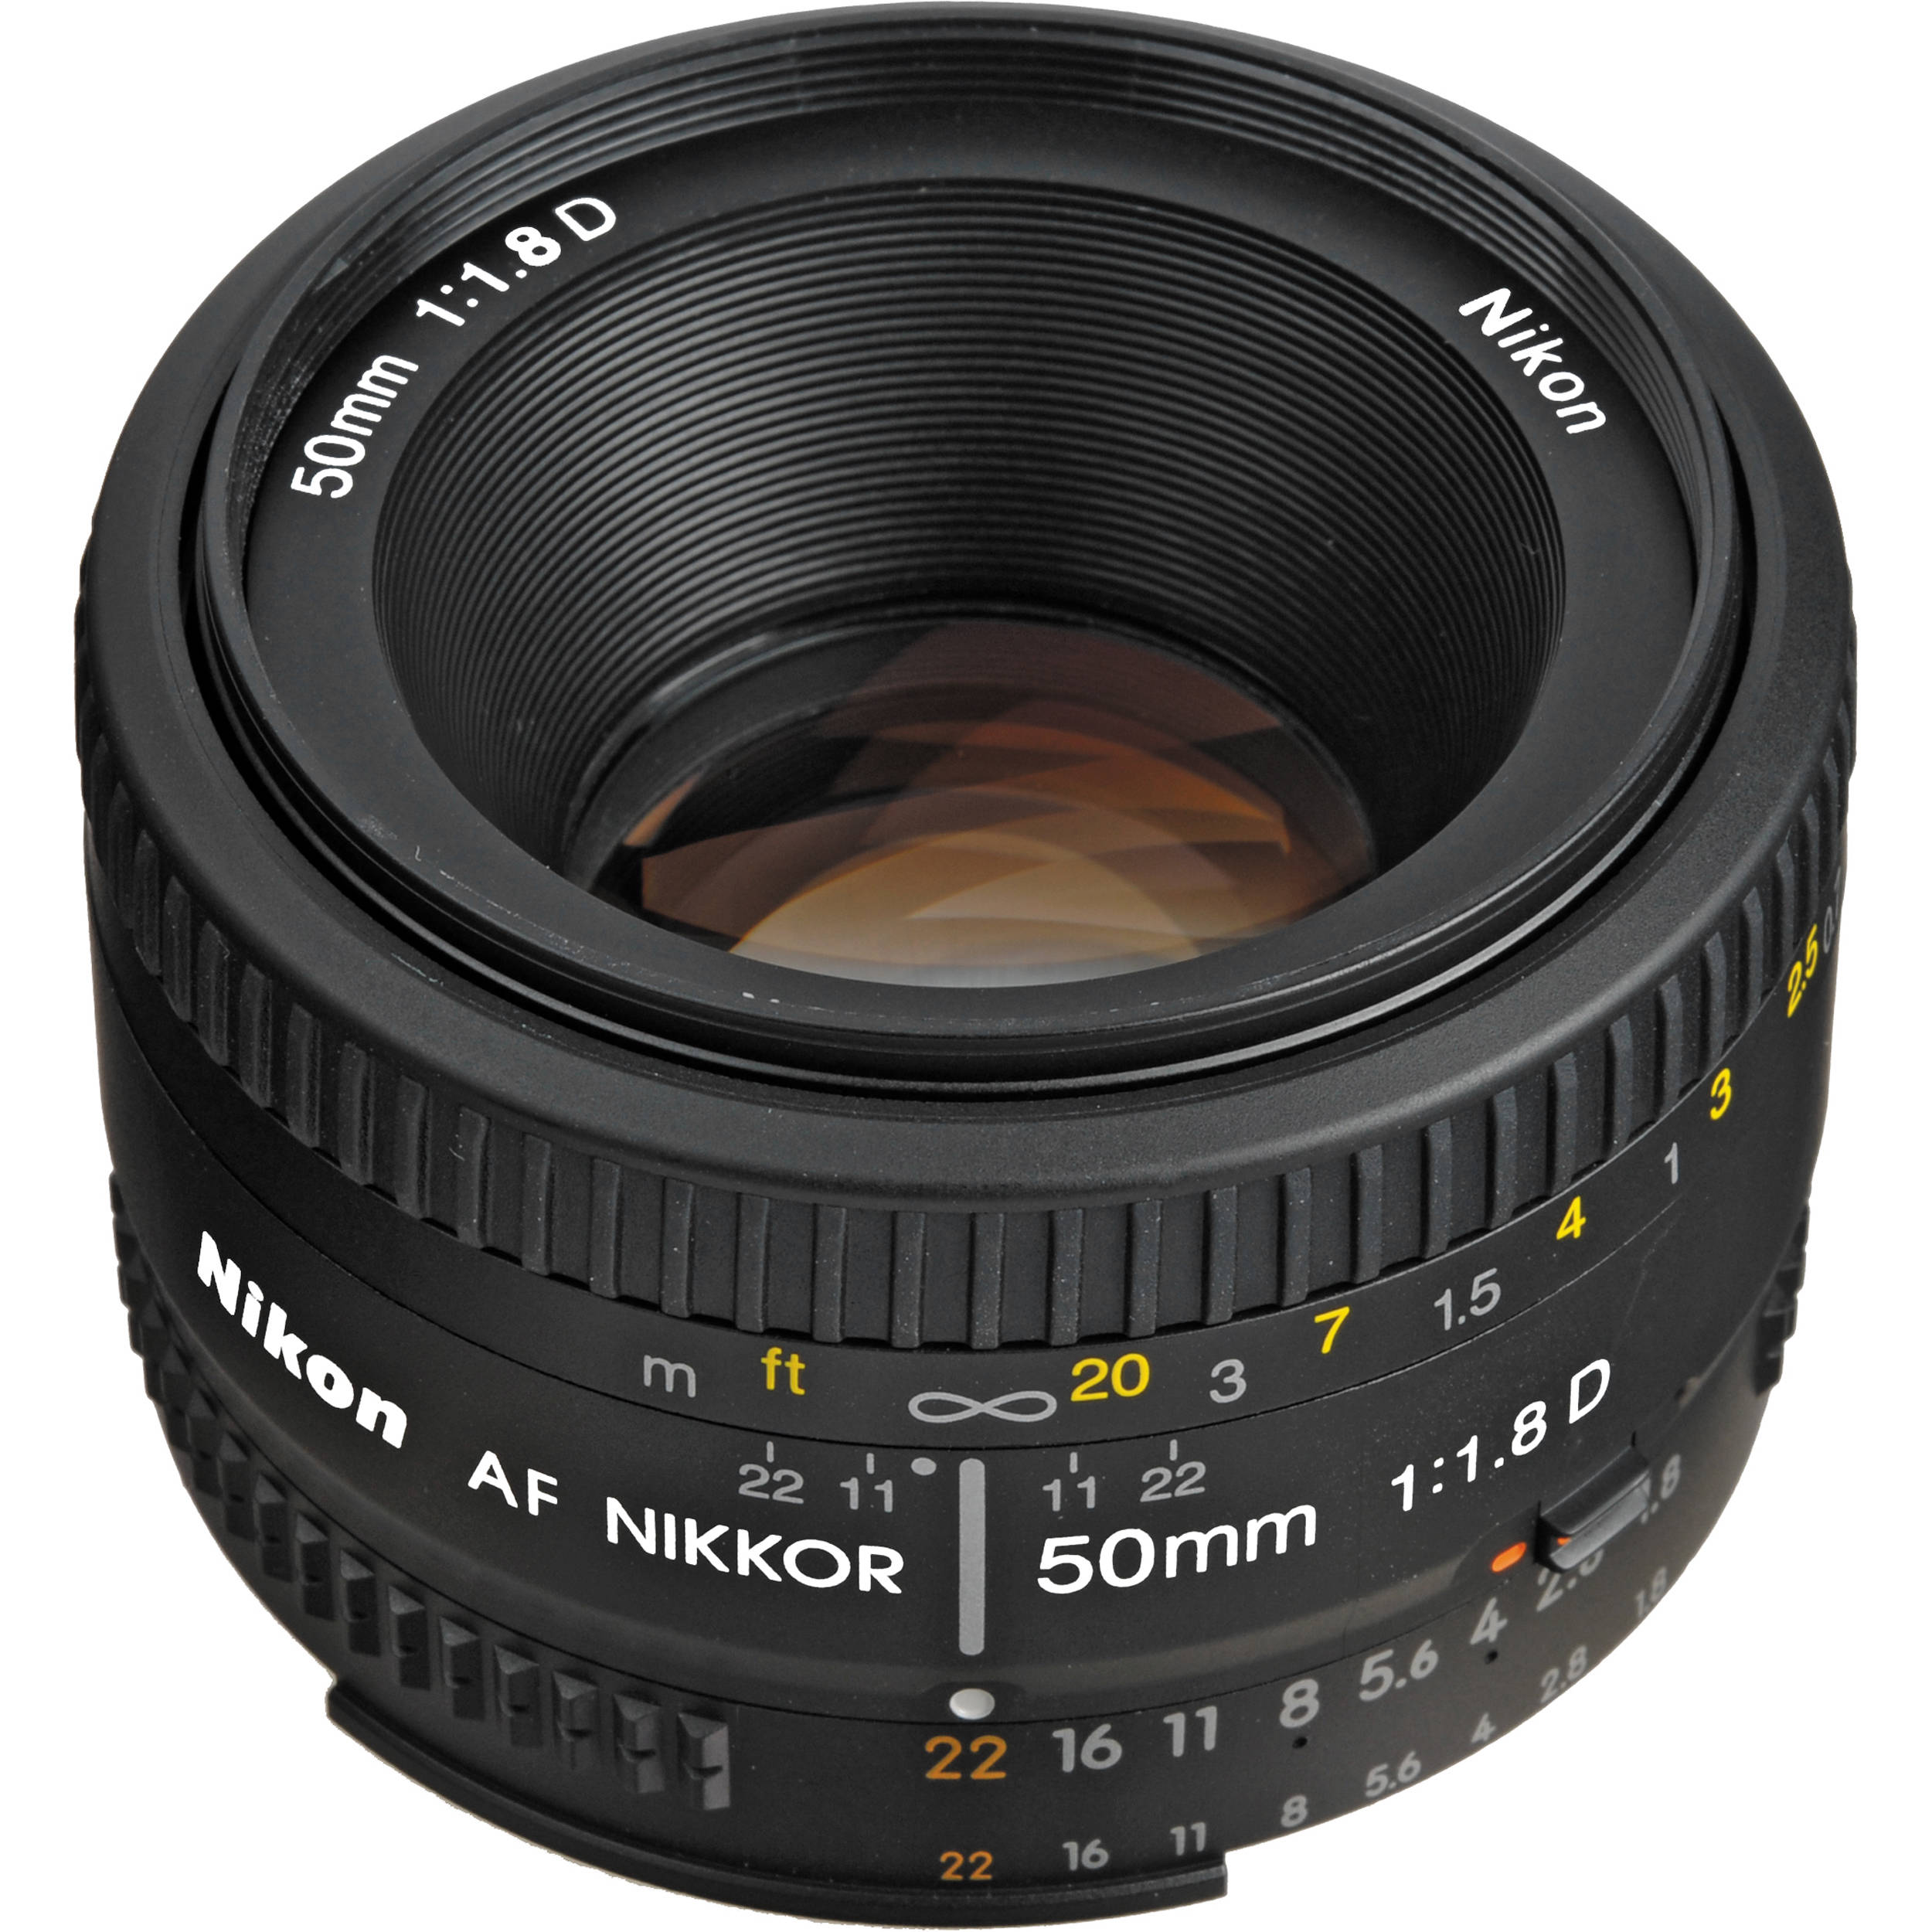 Nikon AF 50mm f/1.8 D : Specifications and Opinions ...